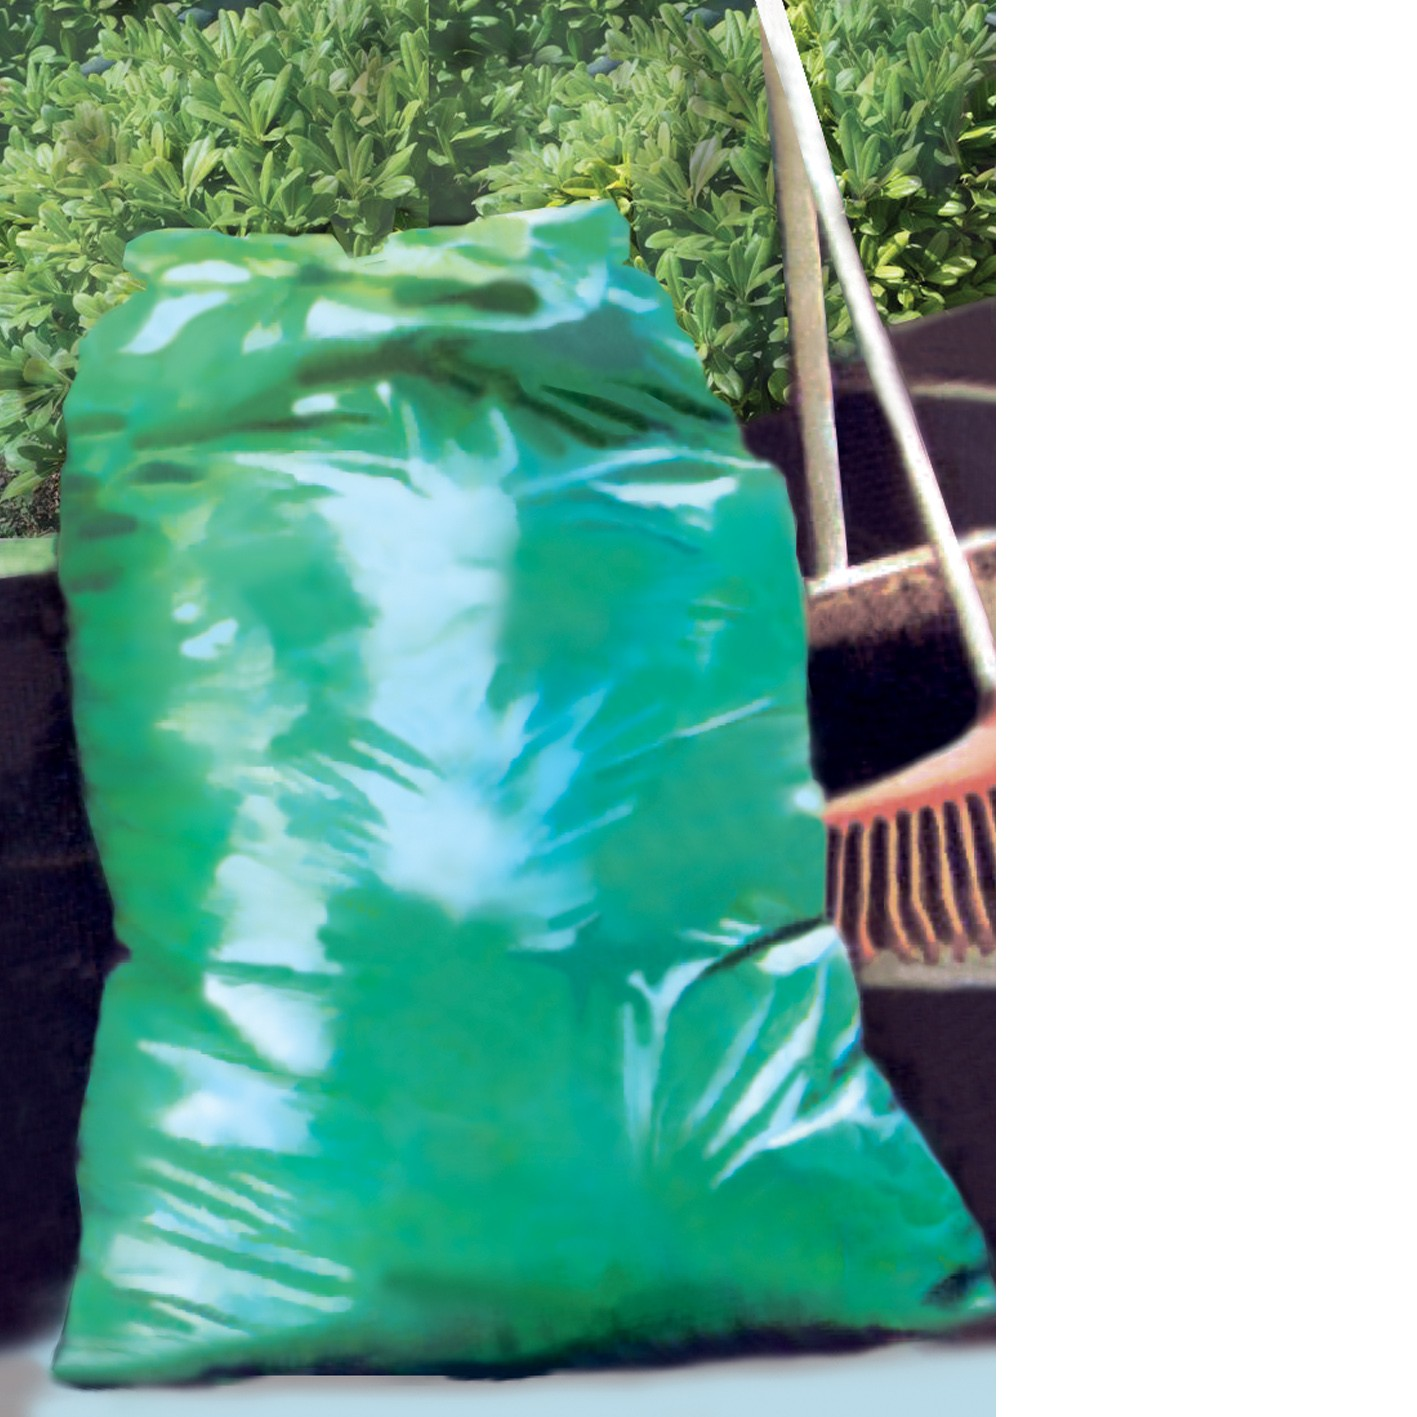 image number  1 products  Large garbage bag 25 pieces, spring 65x80cm box